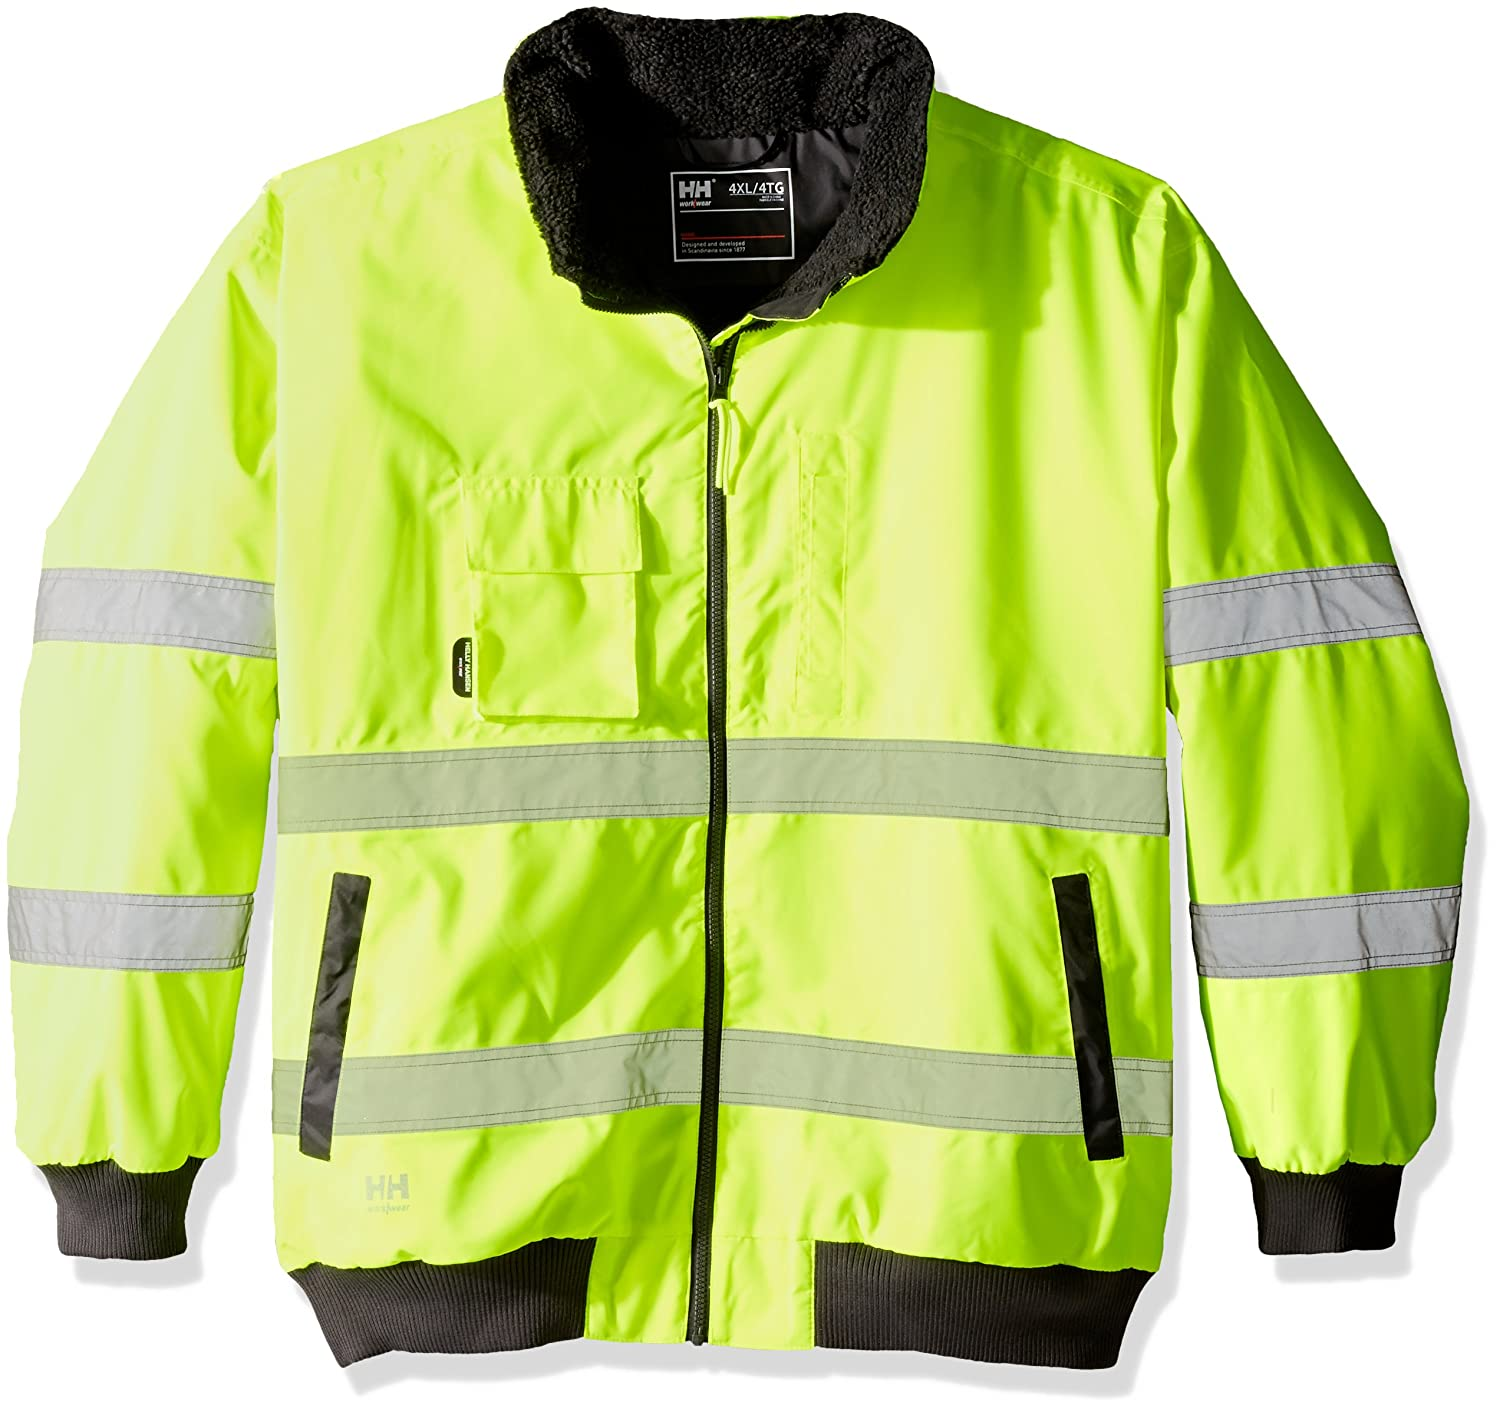 Helly HansenワークウェアMen 's ALTAパイロットhigh-visibility Big and Tallジャケット B01IQYXIKA 5L|Hi Viz Yellow Hi Viz Yellow 5L